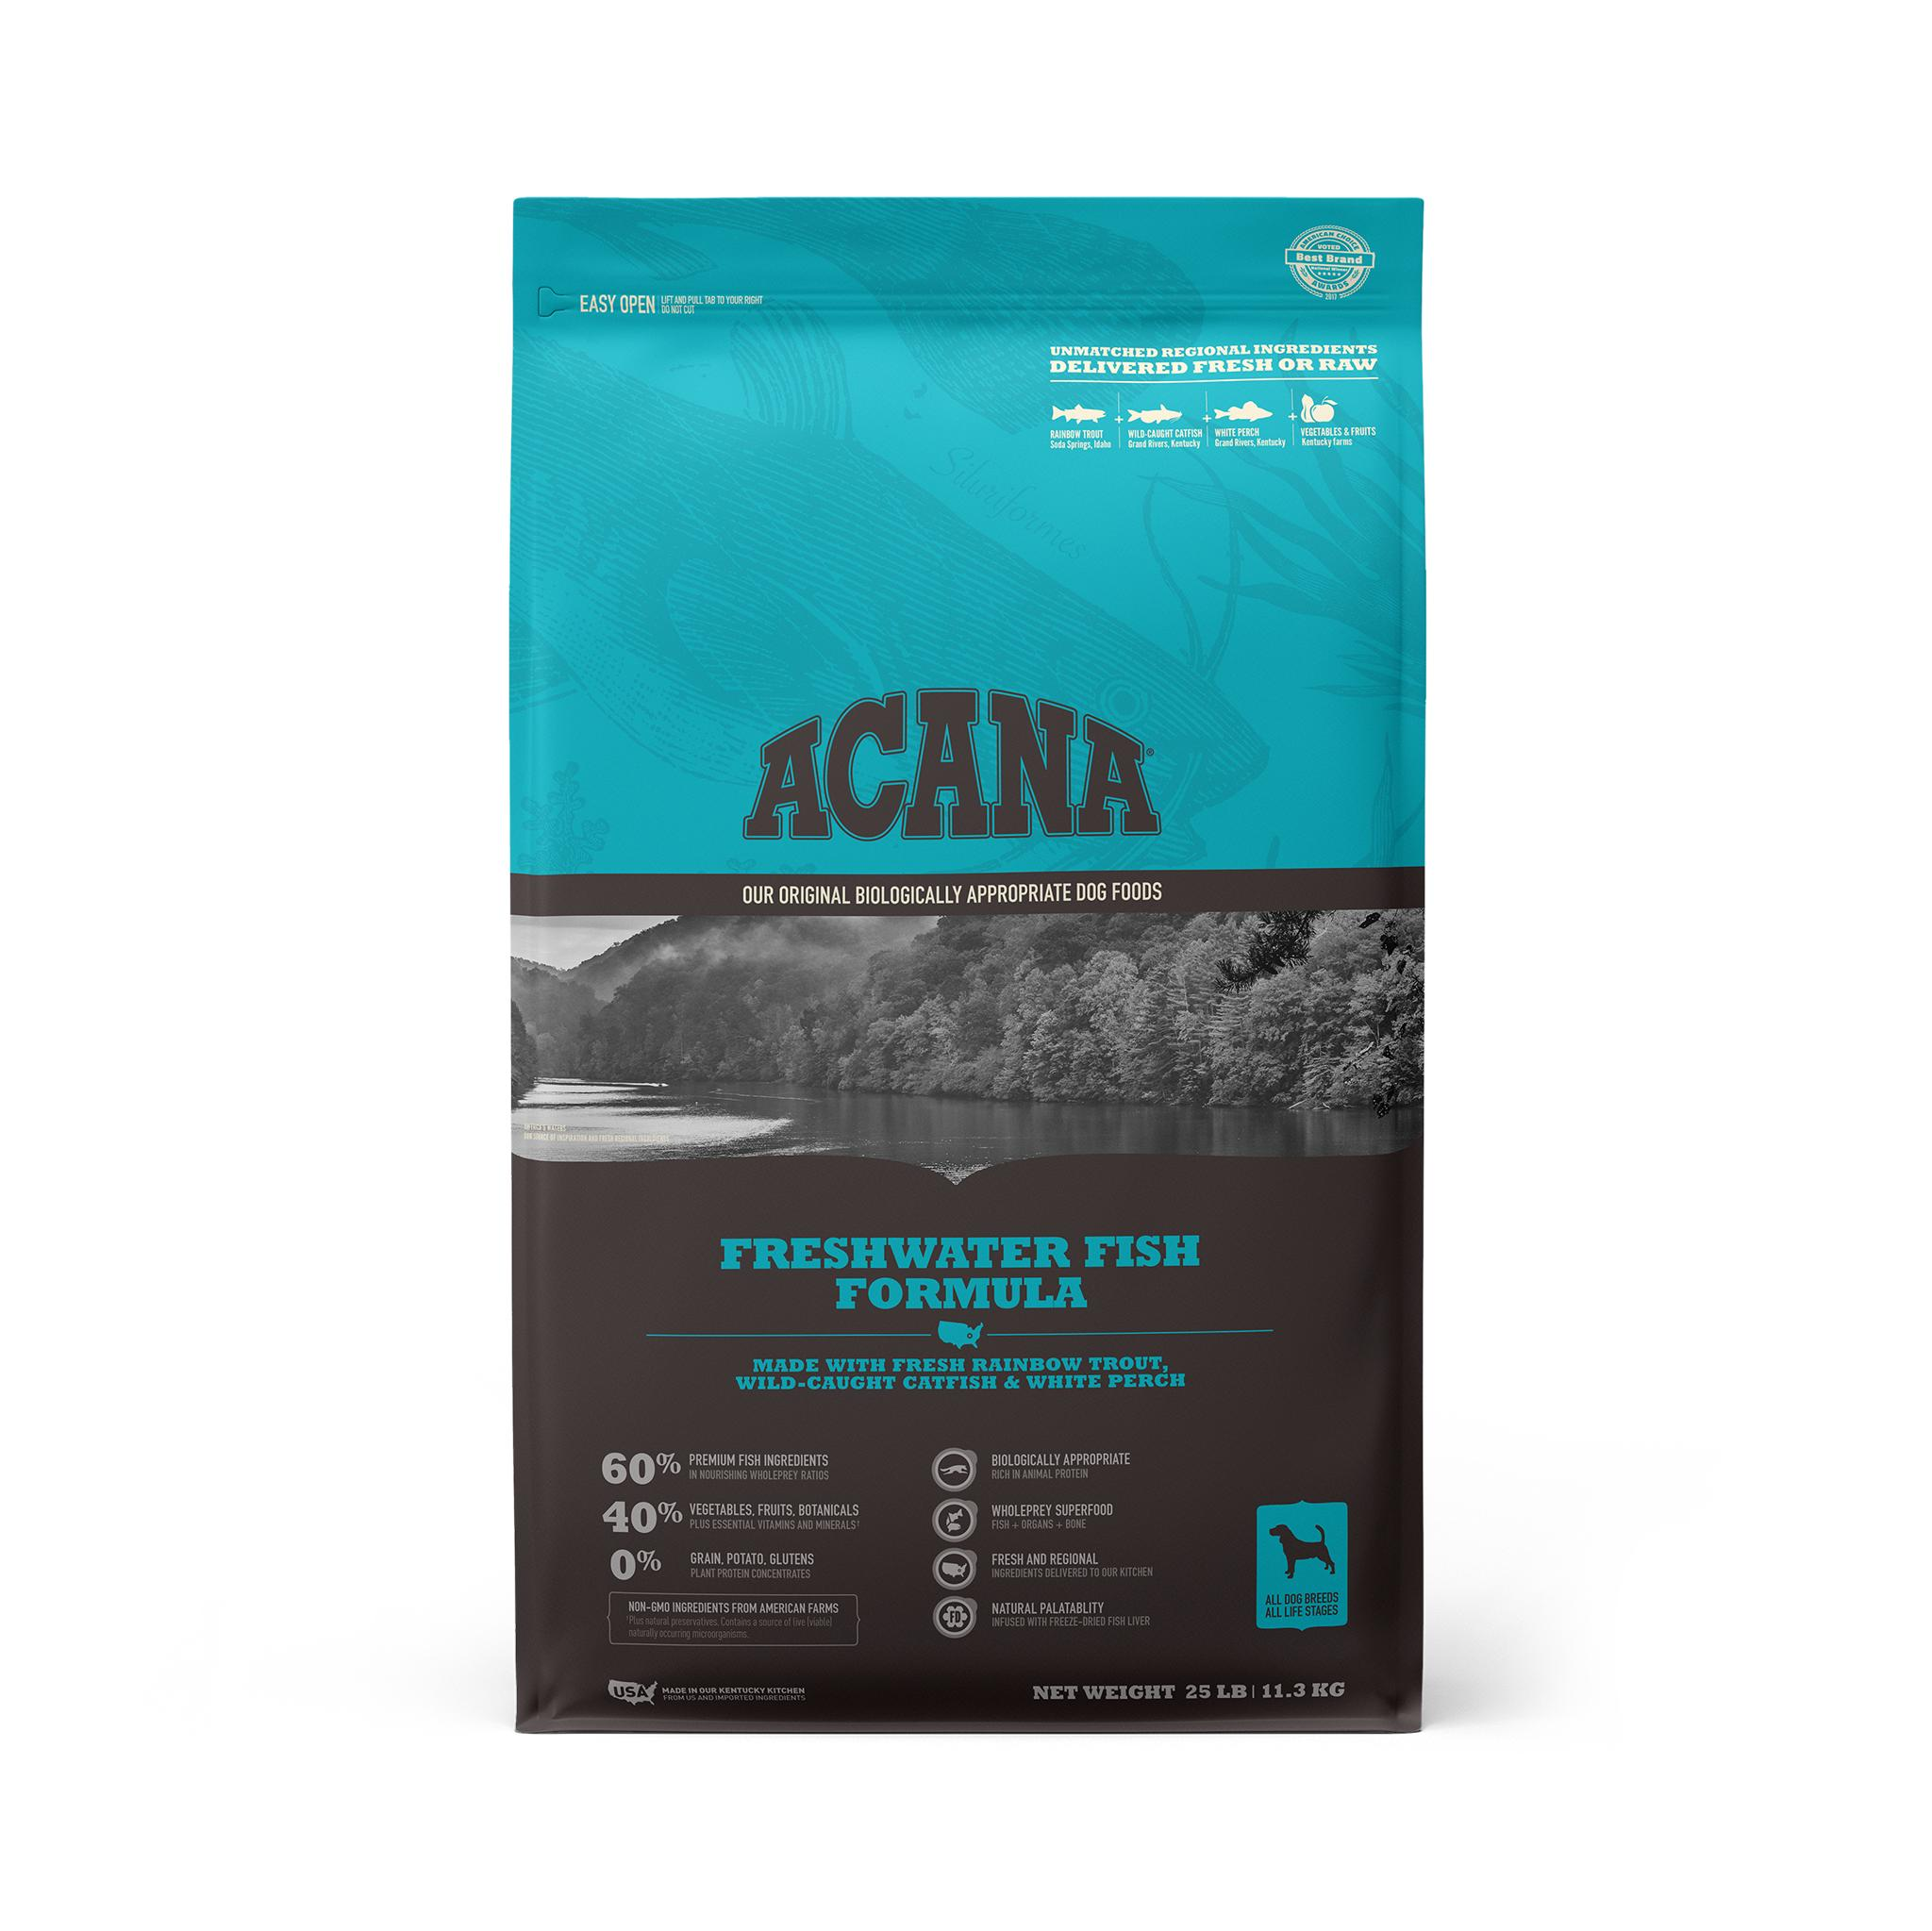 ACANA Freshwater Fish Grain-Free Dry Dog Food, 25-lb